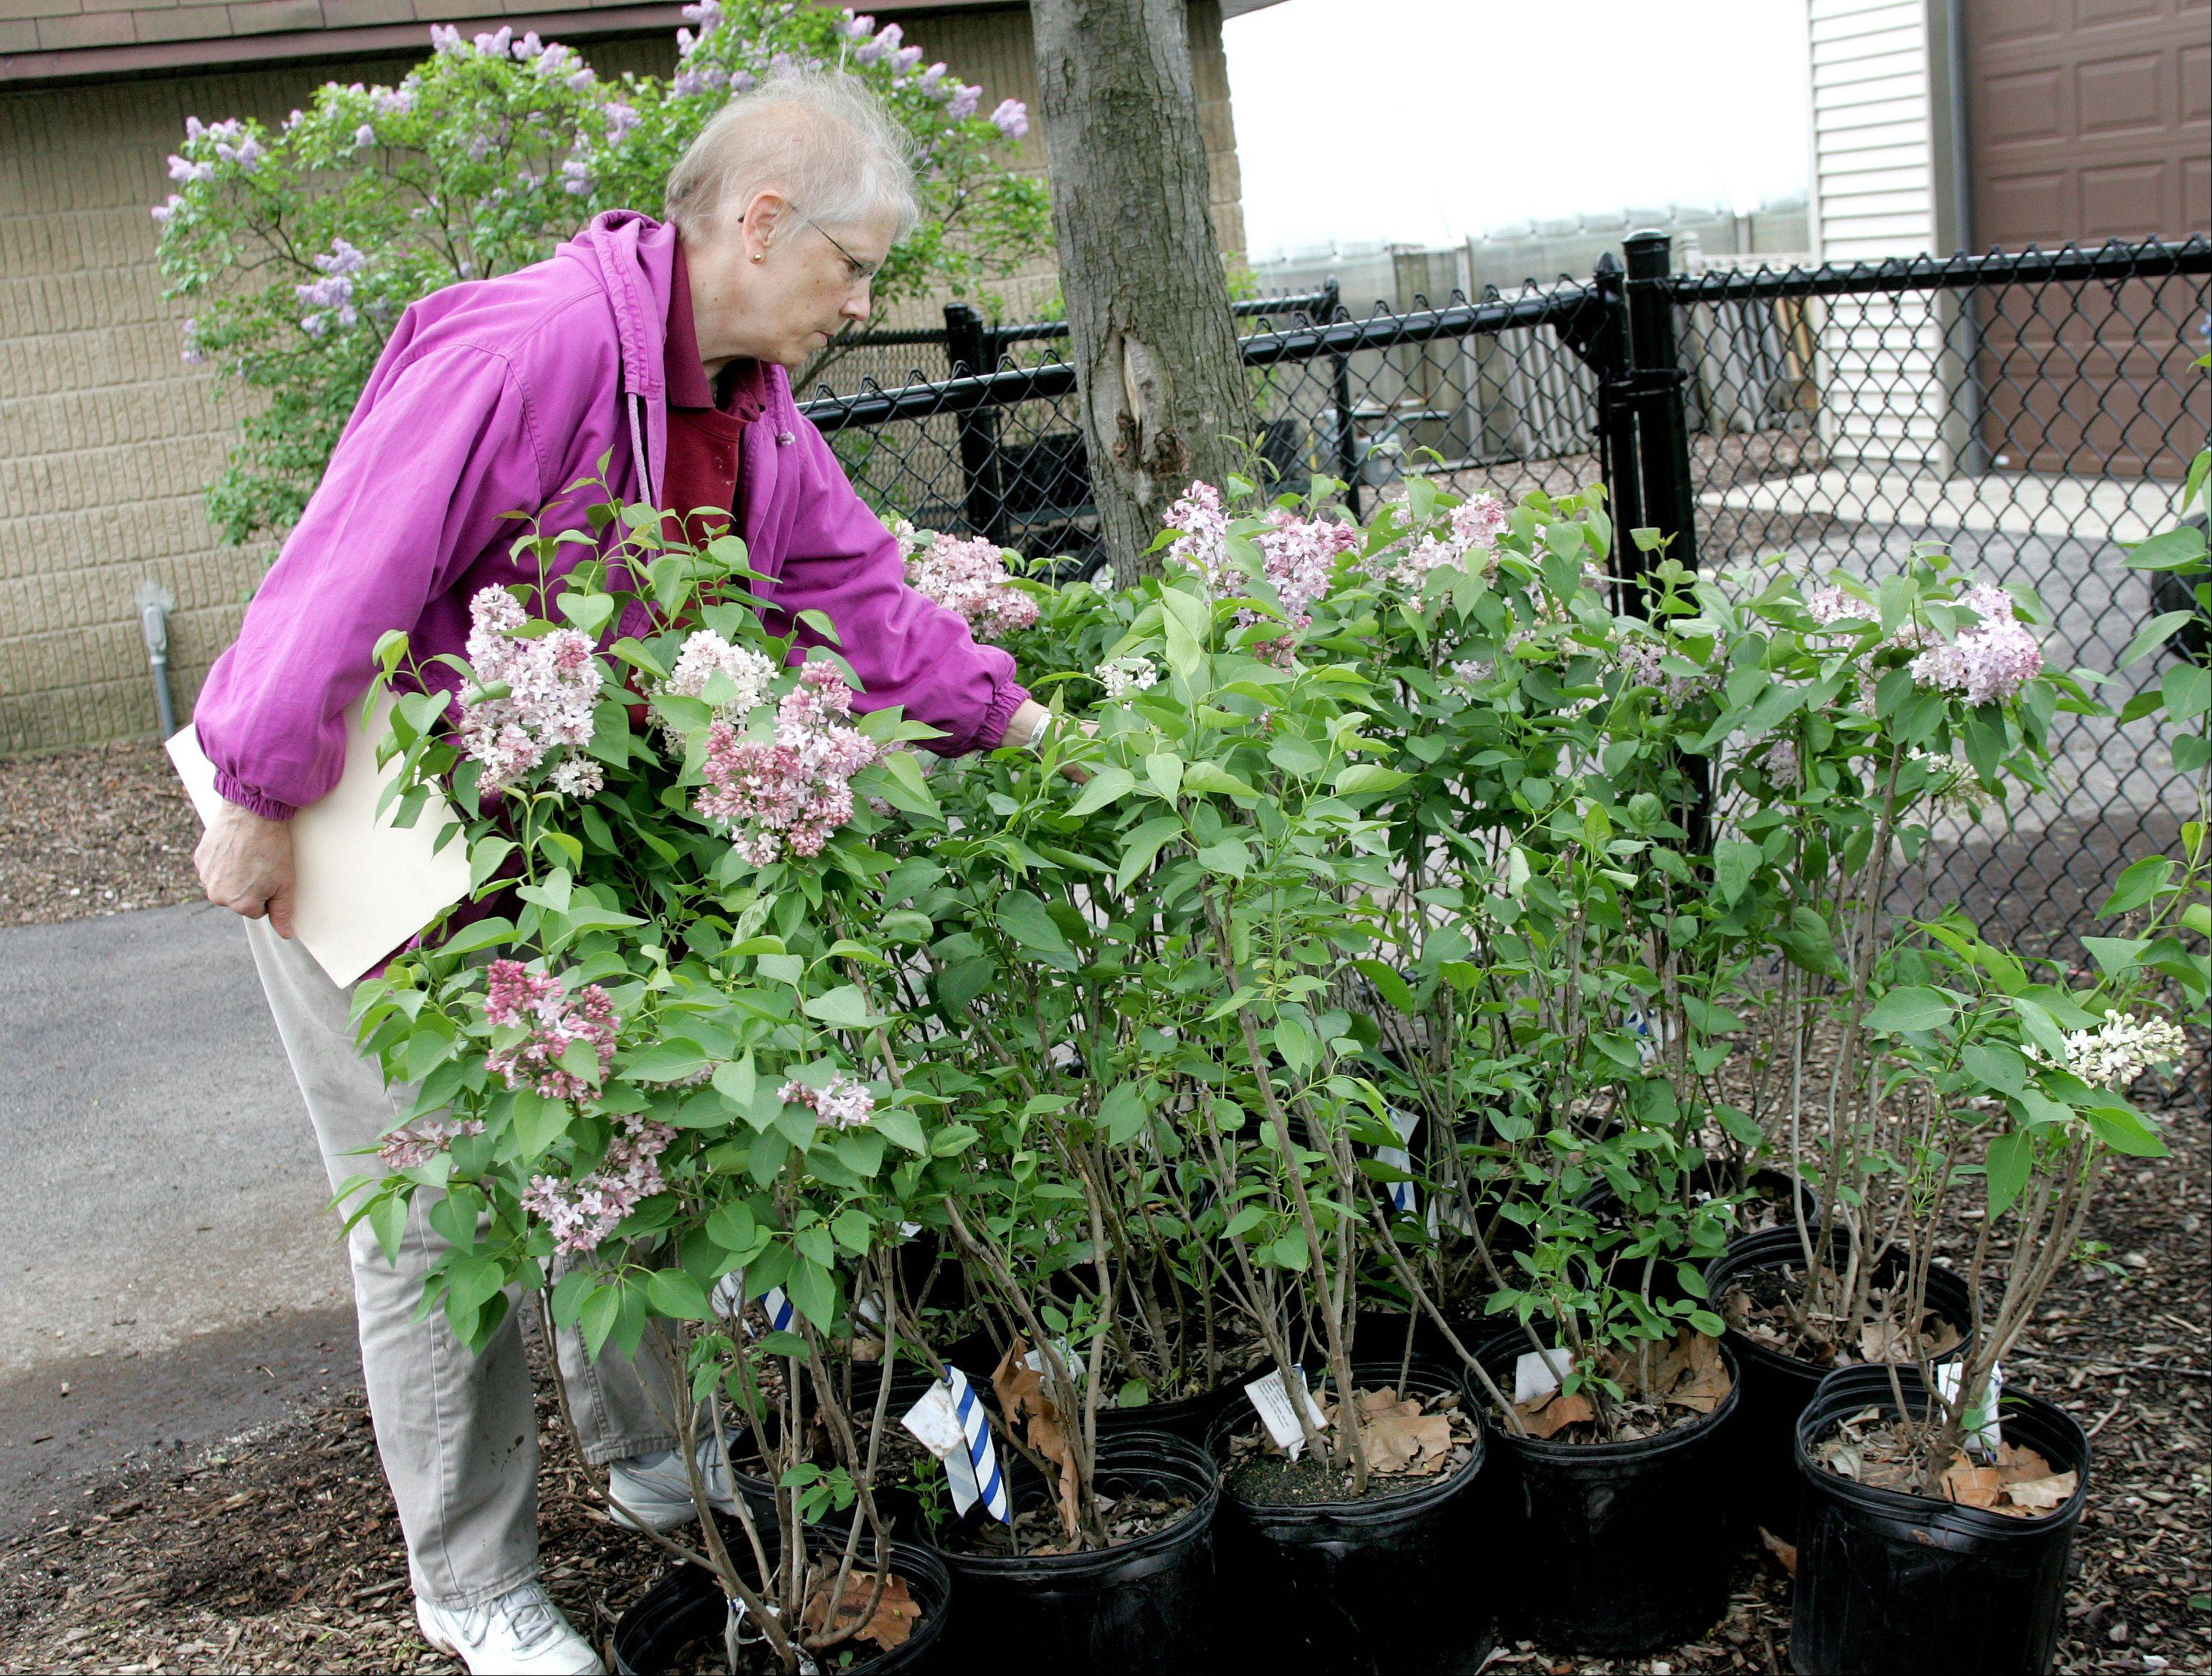 Roughly 400 lilac bushes of 18 varieties will be for sale for $25 each during the annual Lombard Garden Club Lilac Sale from Thursday, May 9, to Saturday, May 11, in Lilacia Park, 150 S. Park Ave.